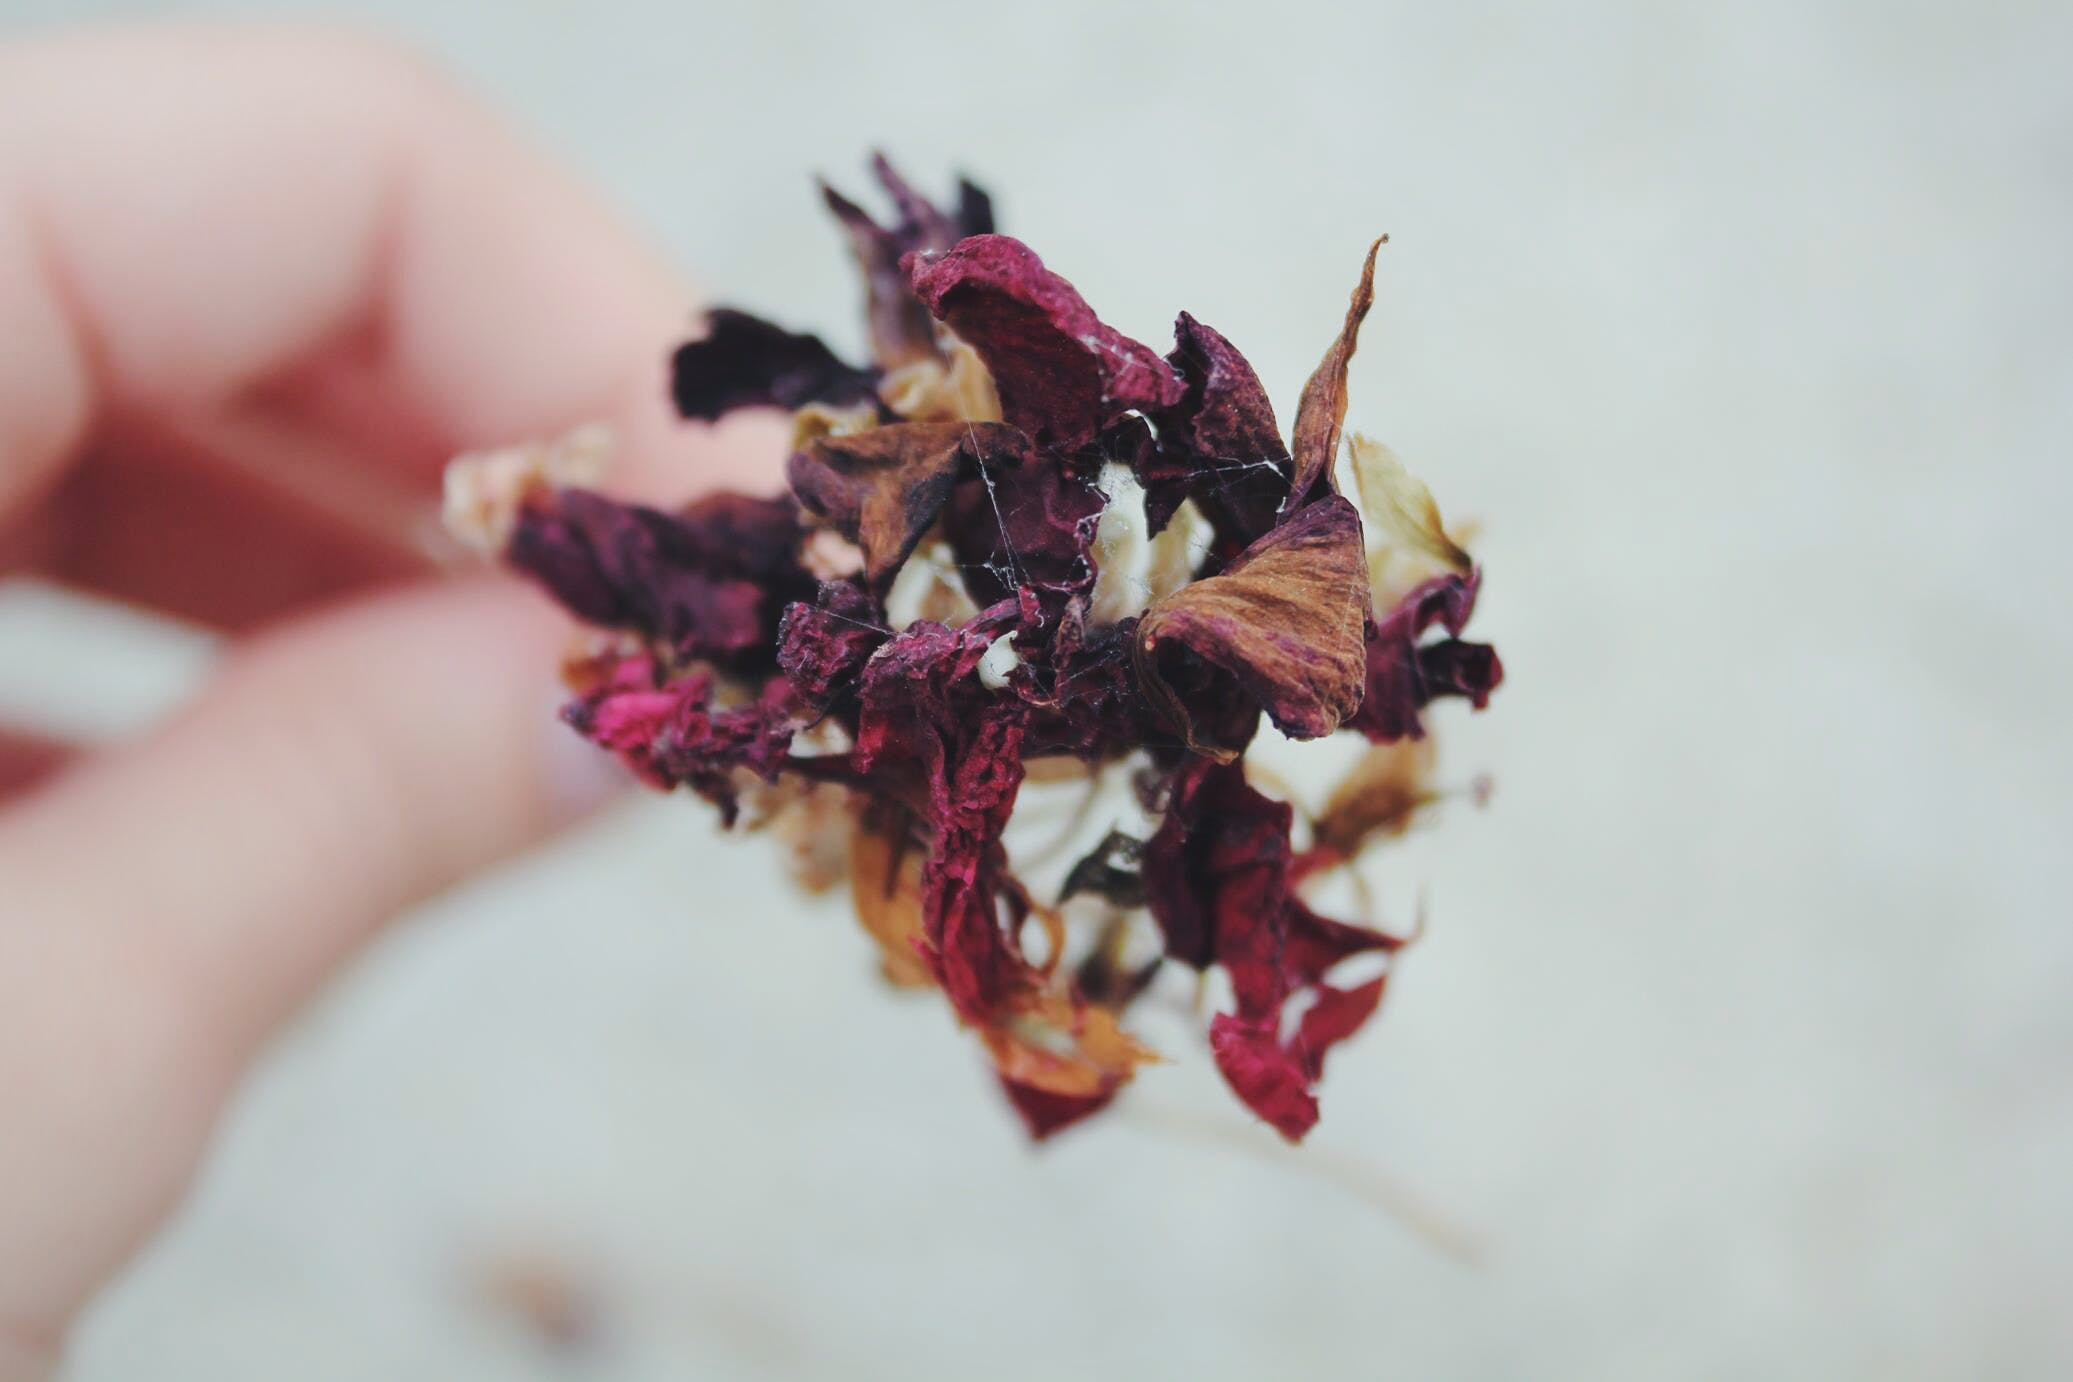 Person Holding Dried Red, Brown, and White Flower